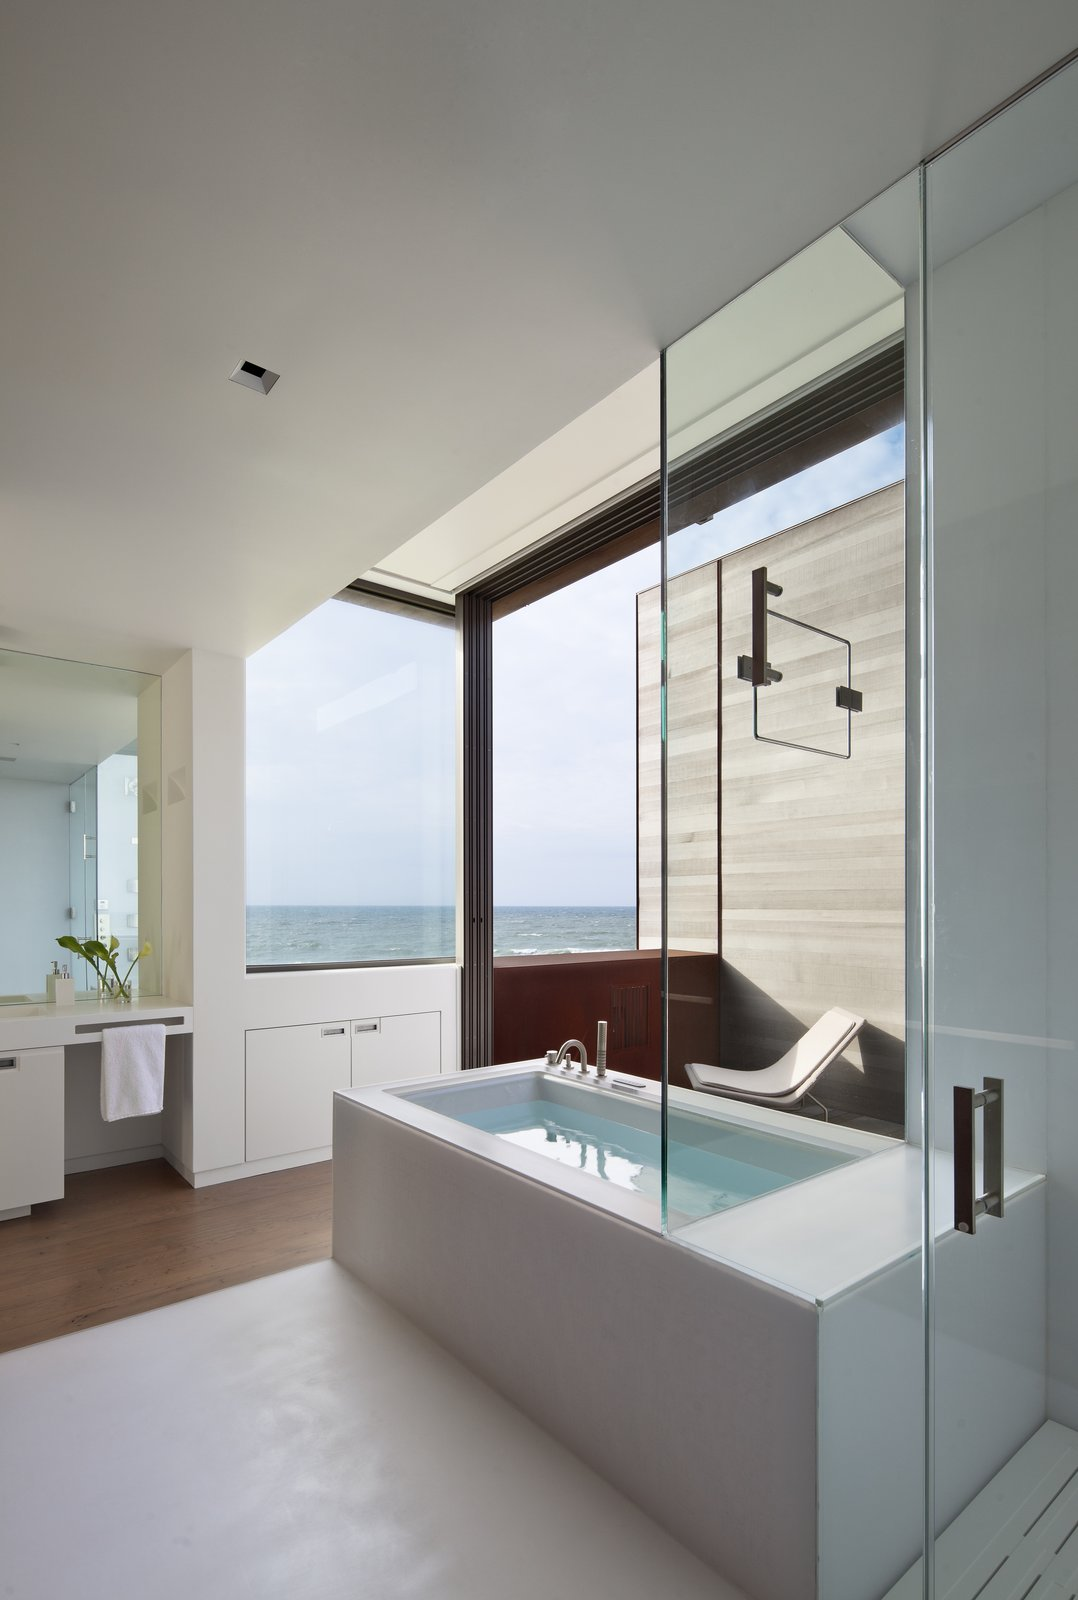 Tagged: Bath Room, Engineered Quartz Counter, Enclosed Shower, Medium Hardwood Floor, Soaking Tub, and Recessed Lighting.  Sagaponack, NY by The Corcoran Group